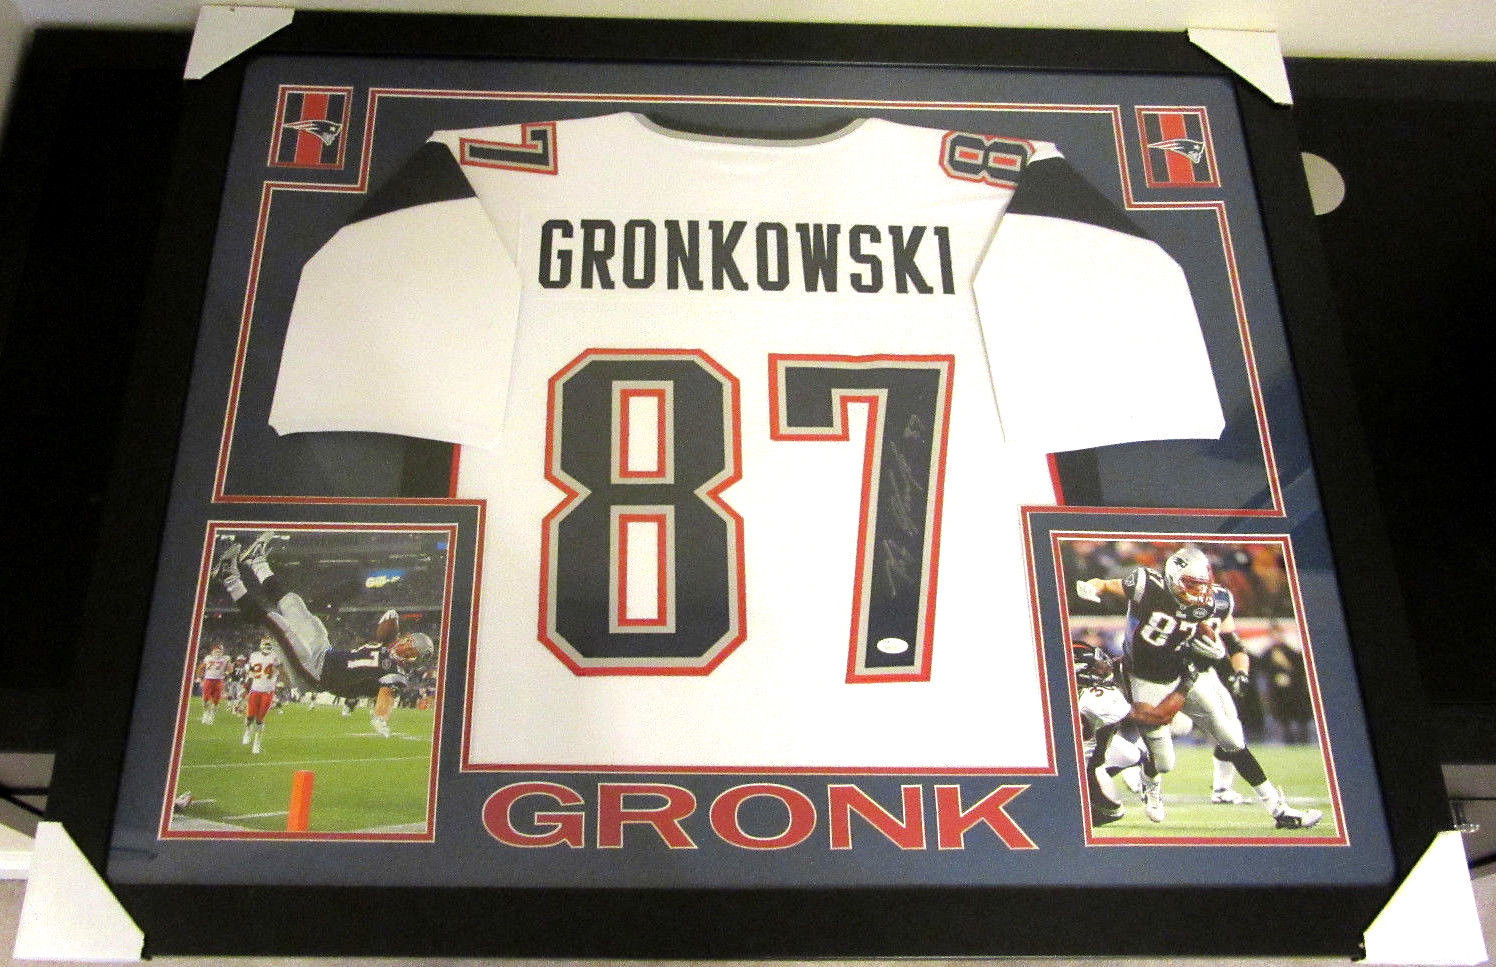 finest selection d10cb 4397e ROB GRONKOWSKI AUTHENTIC AUTOGRAPHED FRAMED AND MATTED N.E PATRIOTS JERSEY